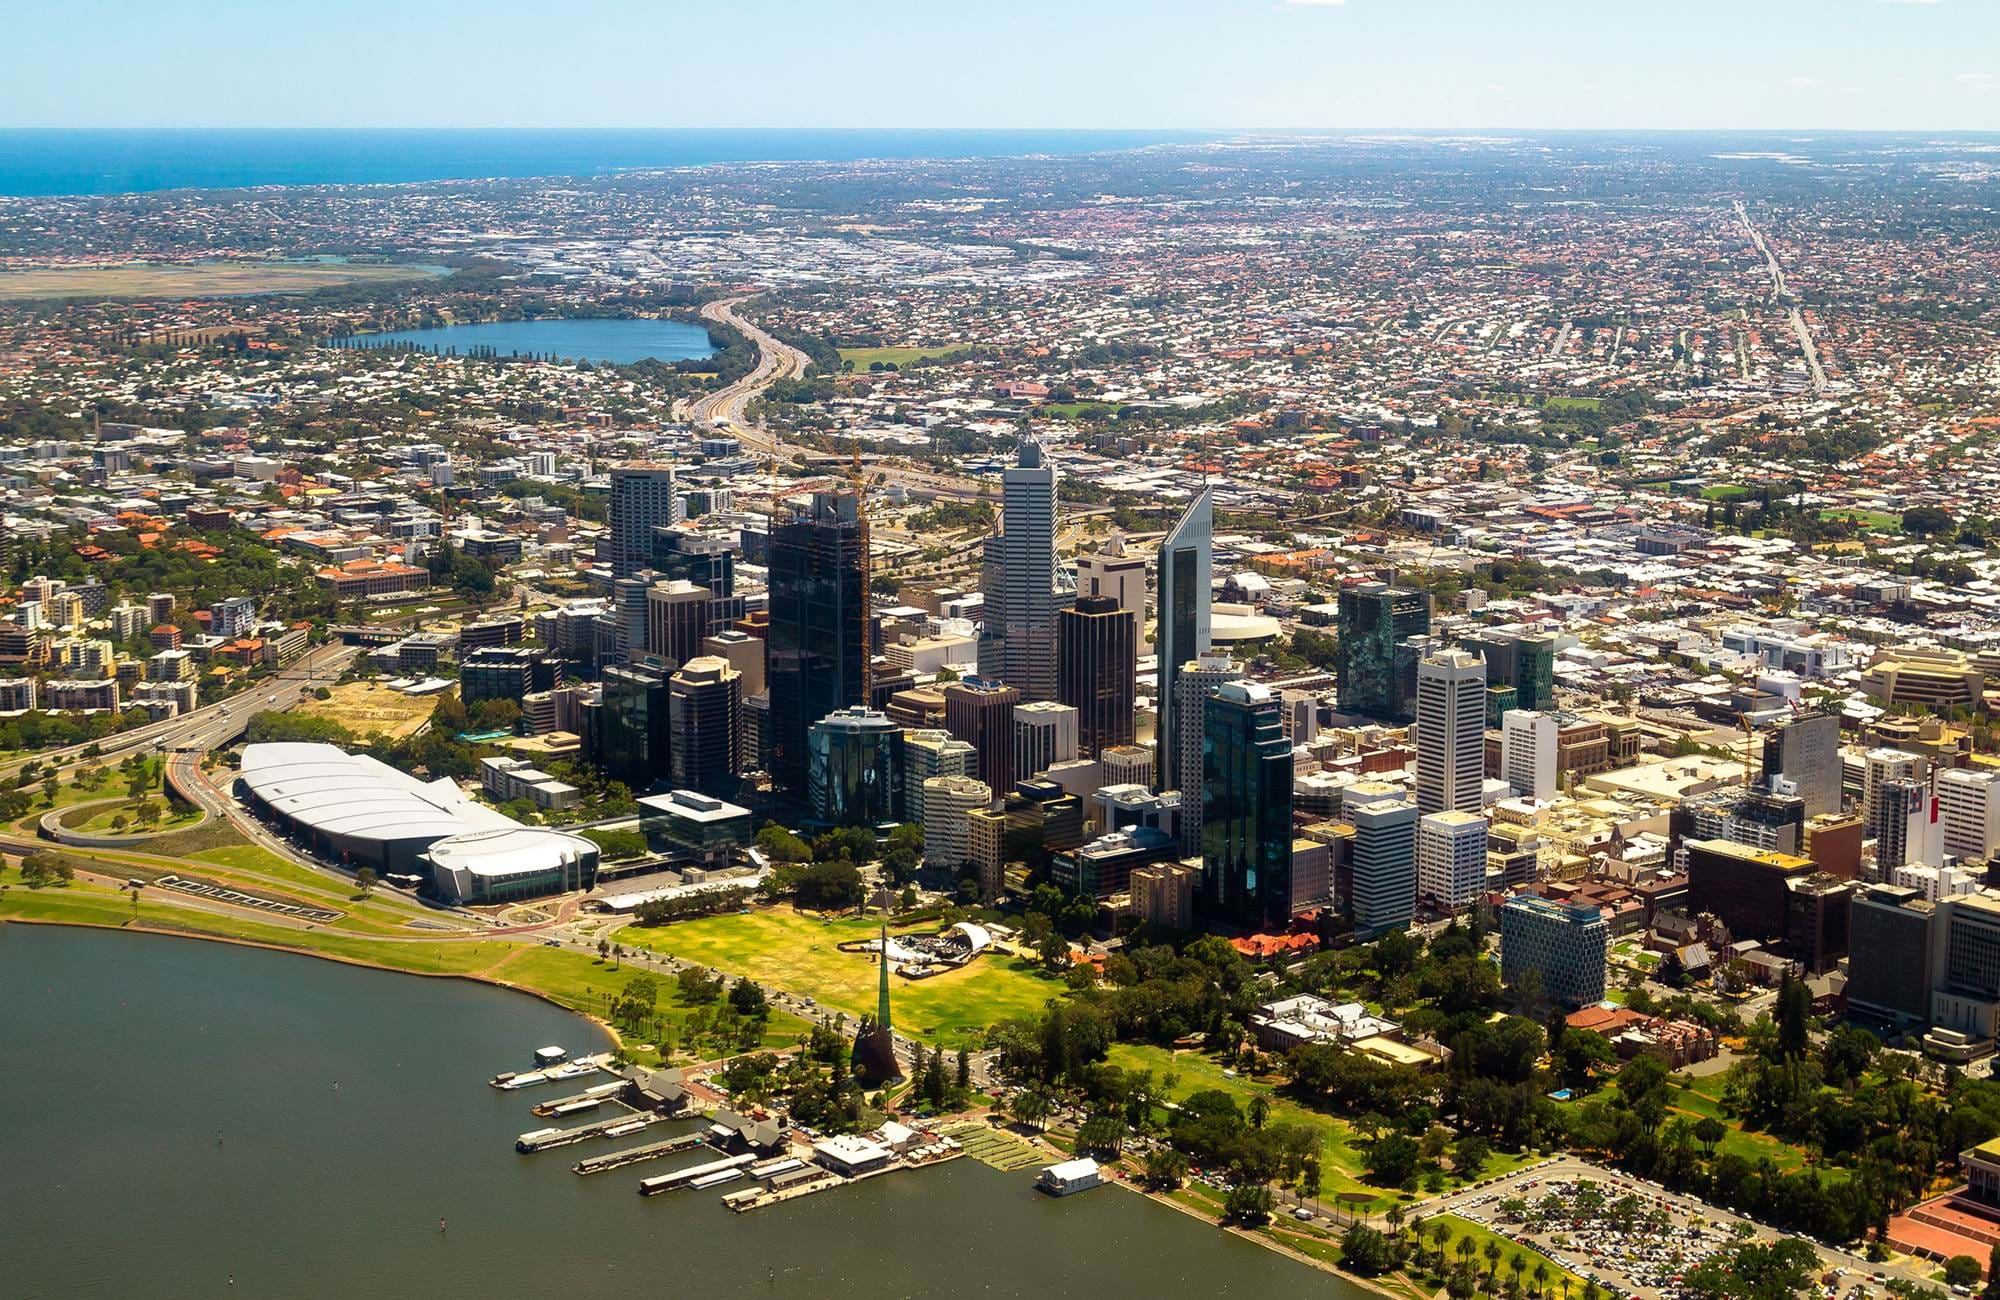 perth skyline in australia and the skyscrapers